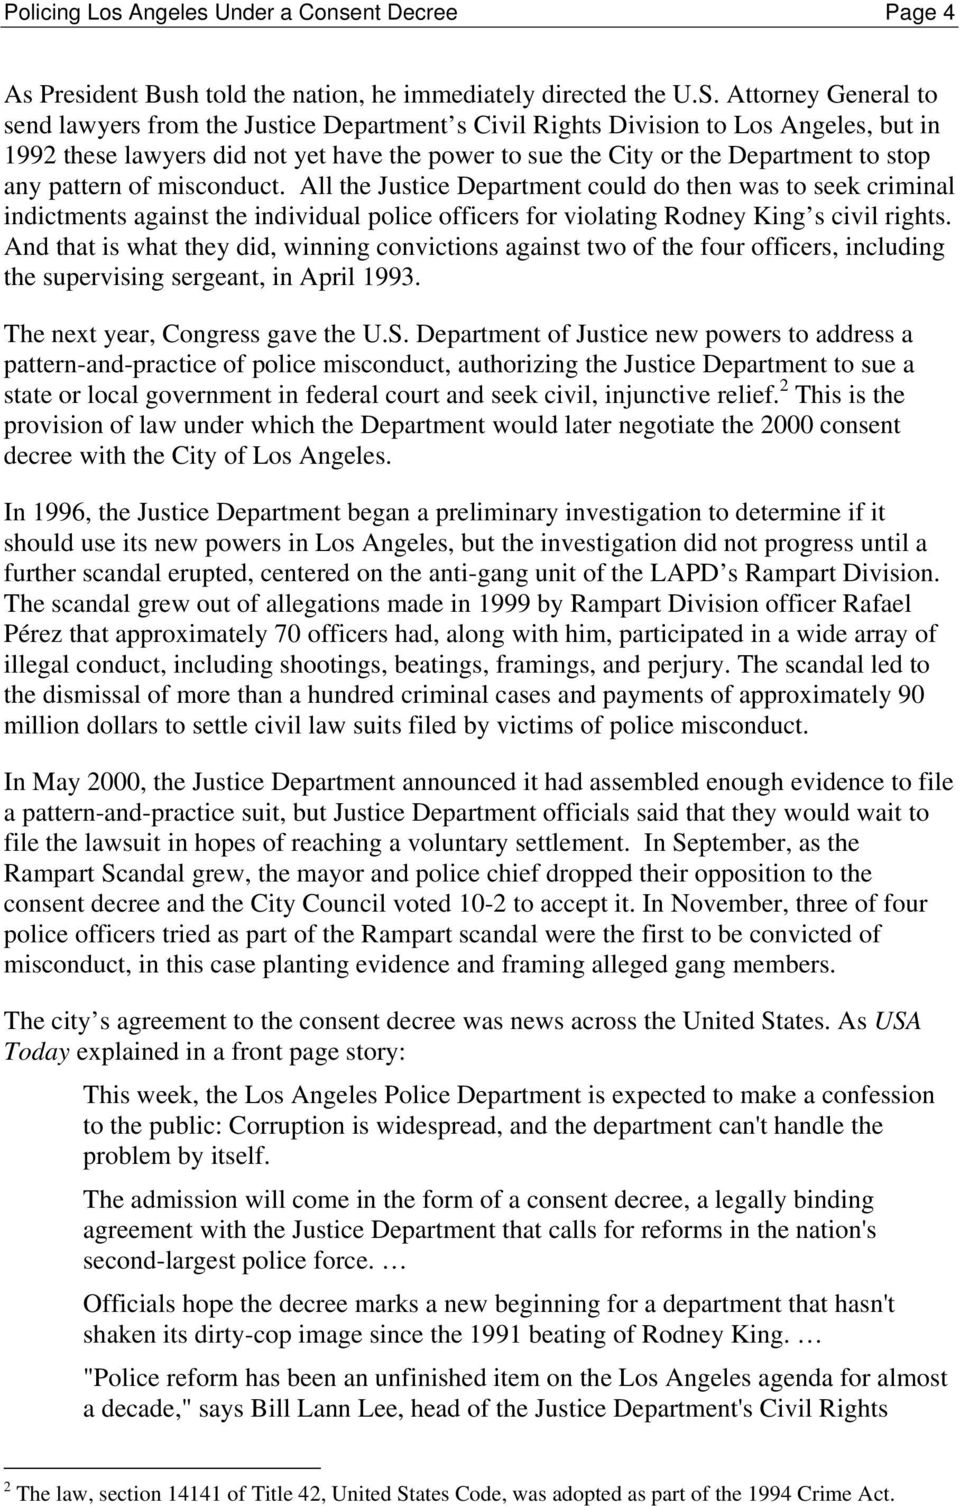 pattern of misconduct. All the Justice Department could do then was to seek criminal indictments against the individual police officers for violating Rodney King s civil rights.